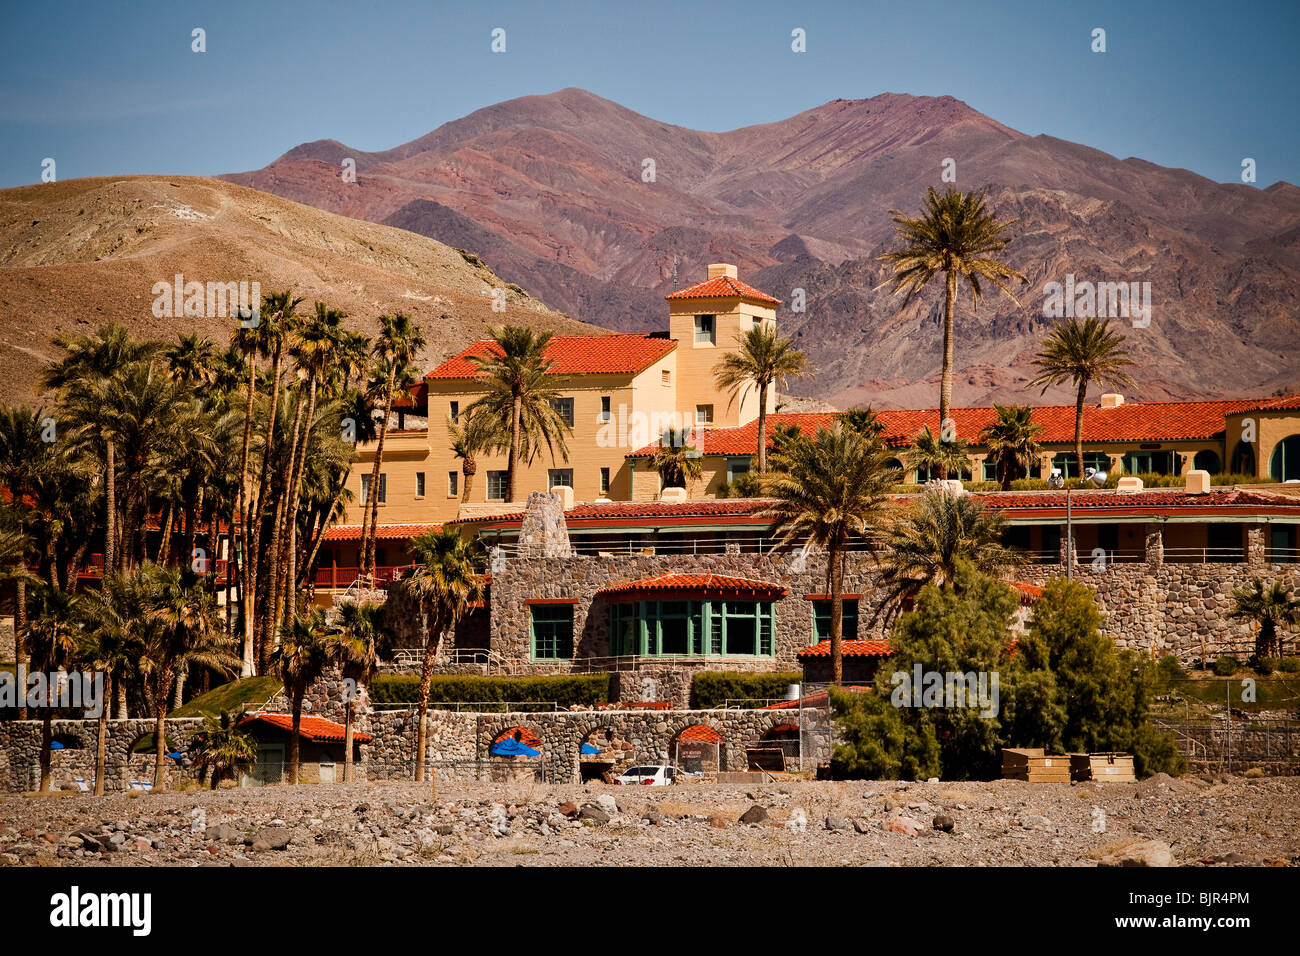 Historic Furnace Creek Inn at Death Valley National Park